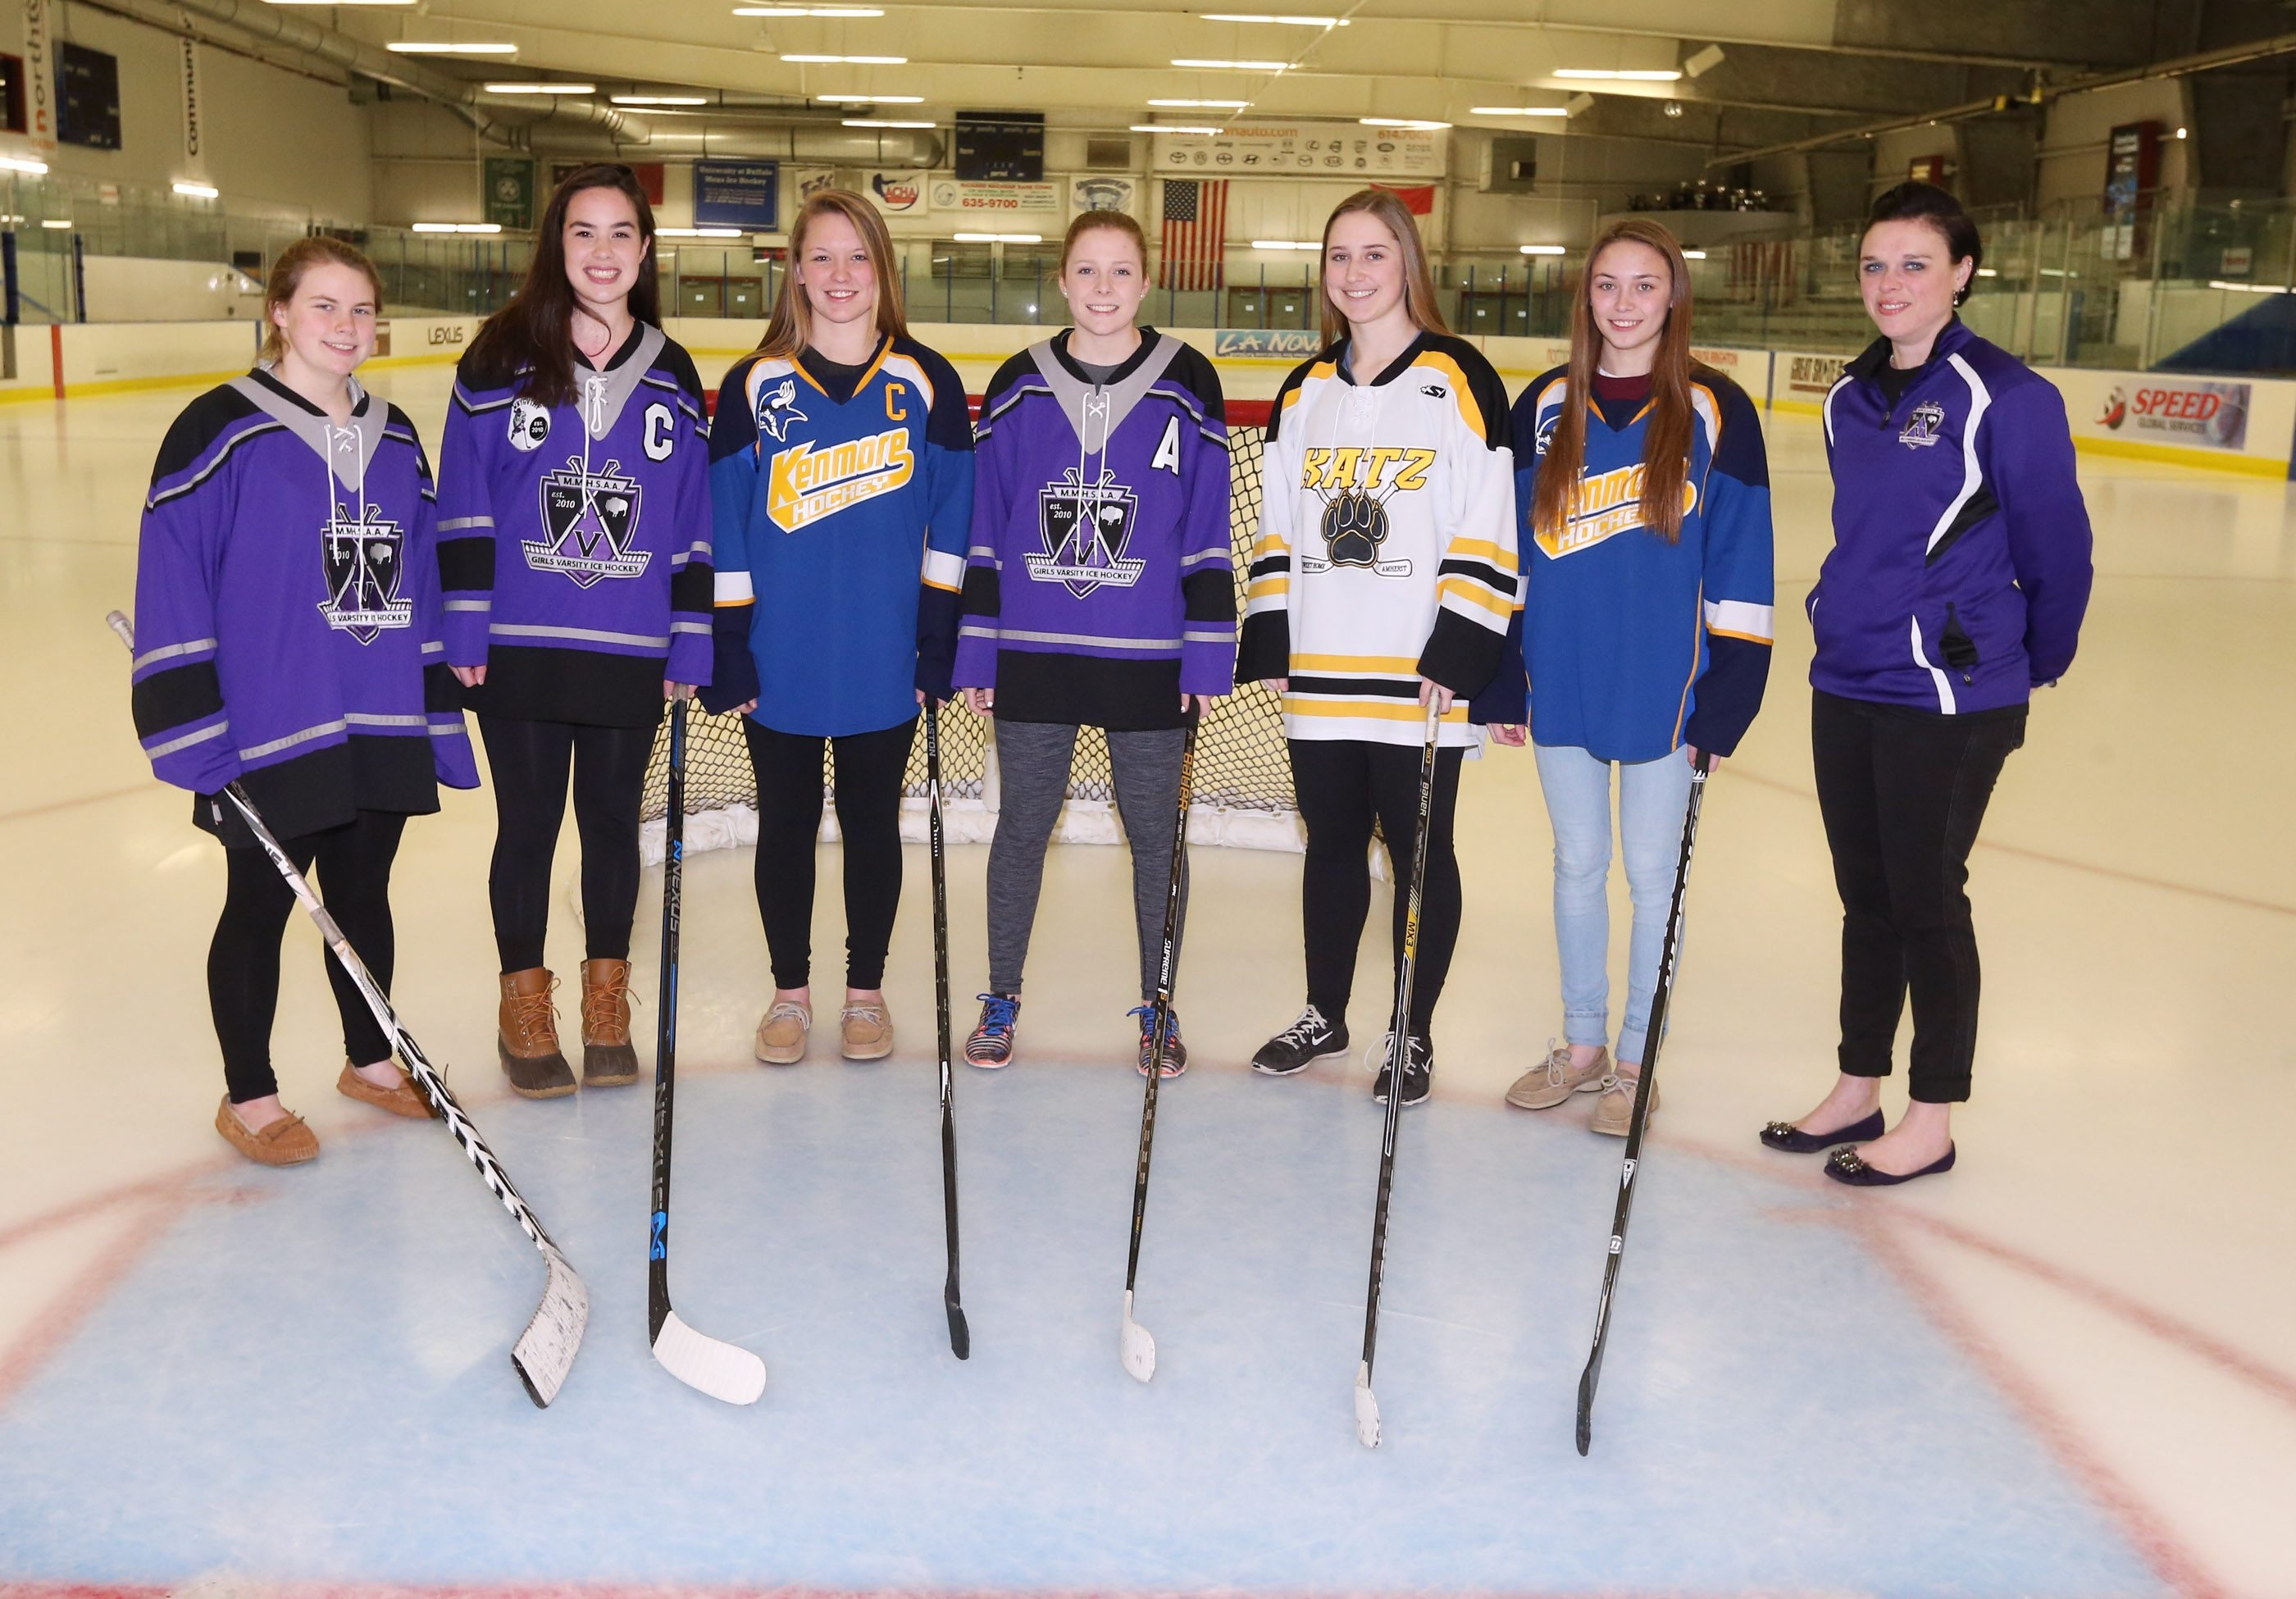 All-WNY Girls Federation Hockey First Team, from left: Brianna Gawronski (Monsignor Martin), Maeve Christ (Monsignor Martin), Grace Simmons (Kenmore/Grand Island), Kaitlyn Drew-Meade (Monsignor Martin), Julia Mings (Amherst/Sweet Home/Clarence), Olivia Smith (Kenmore/Grand Island) and Coach of the Year Linda Groff-Mroz (Monsignor Martin).